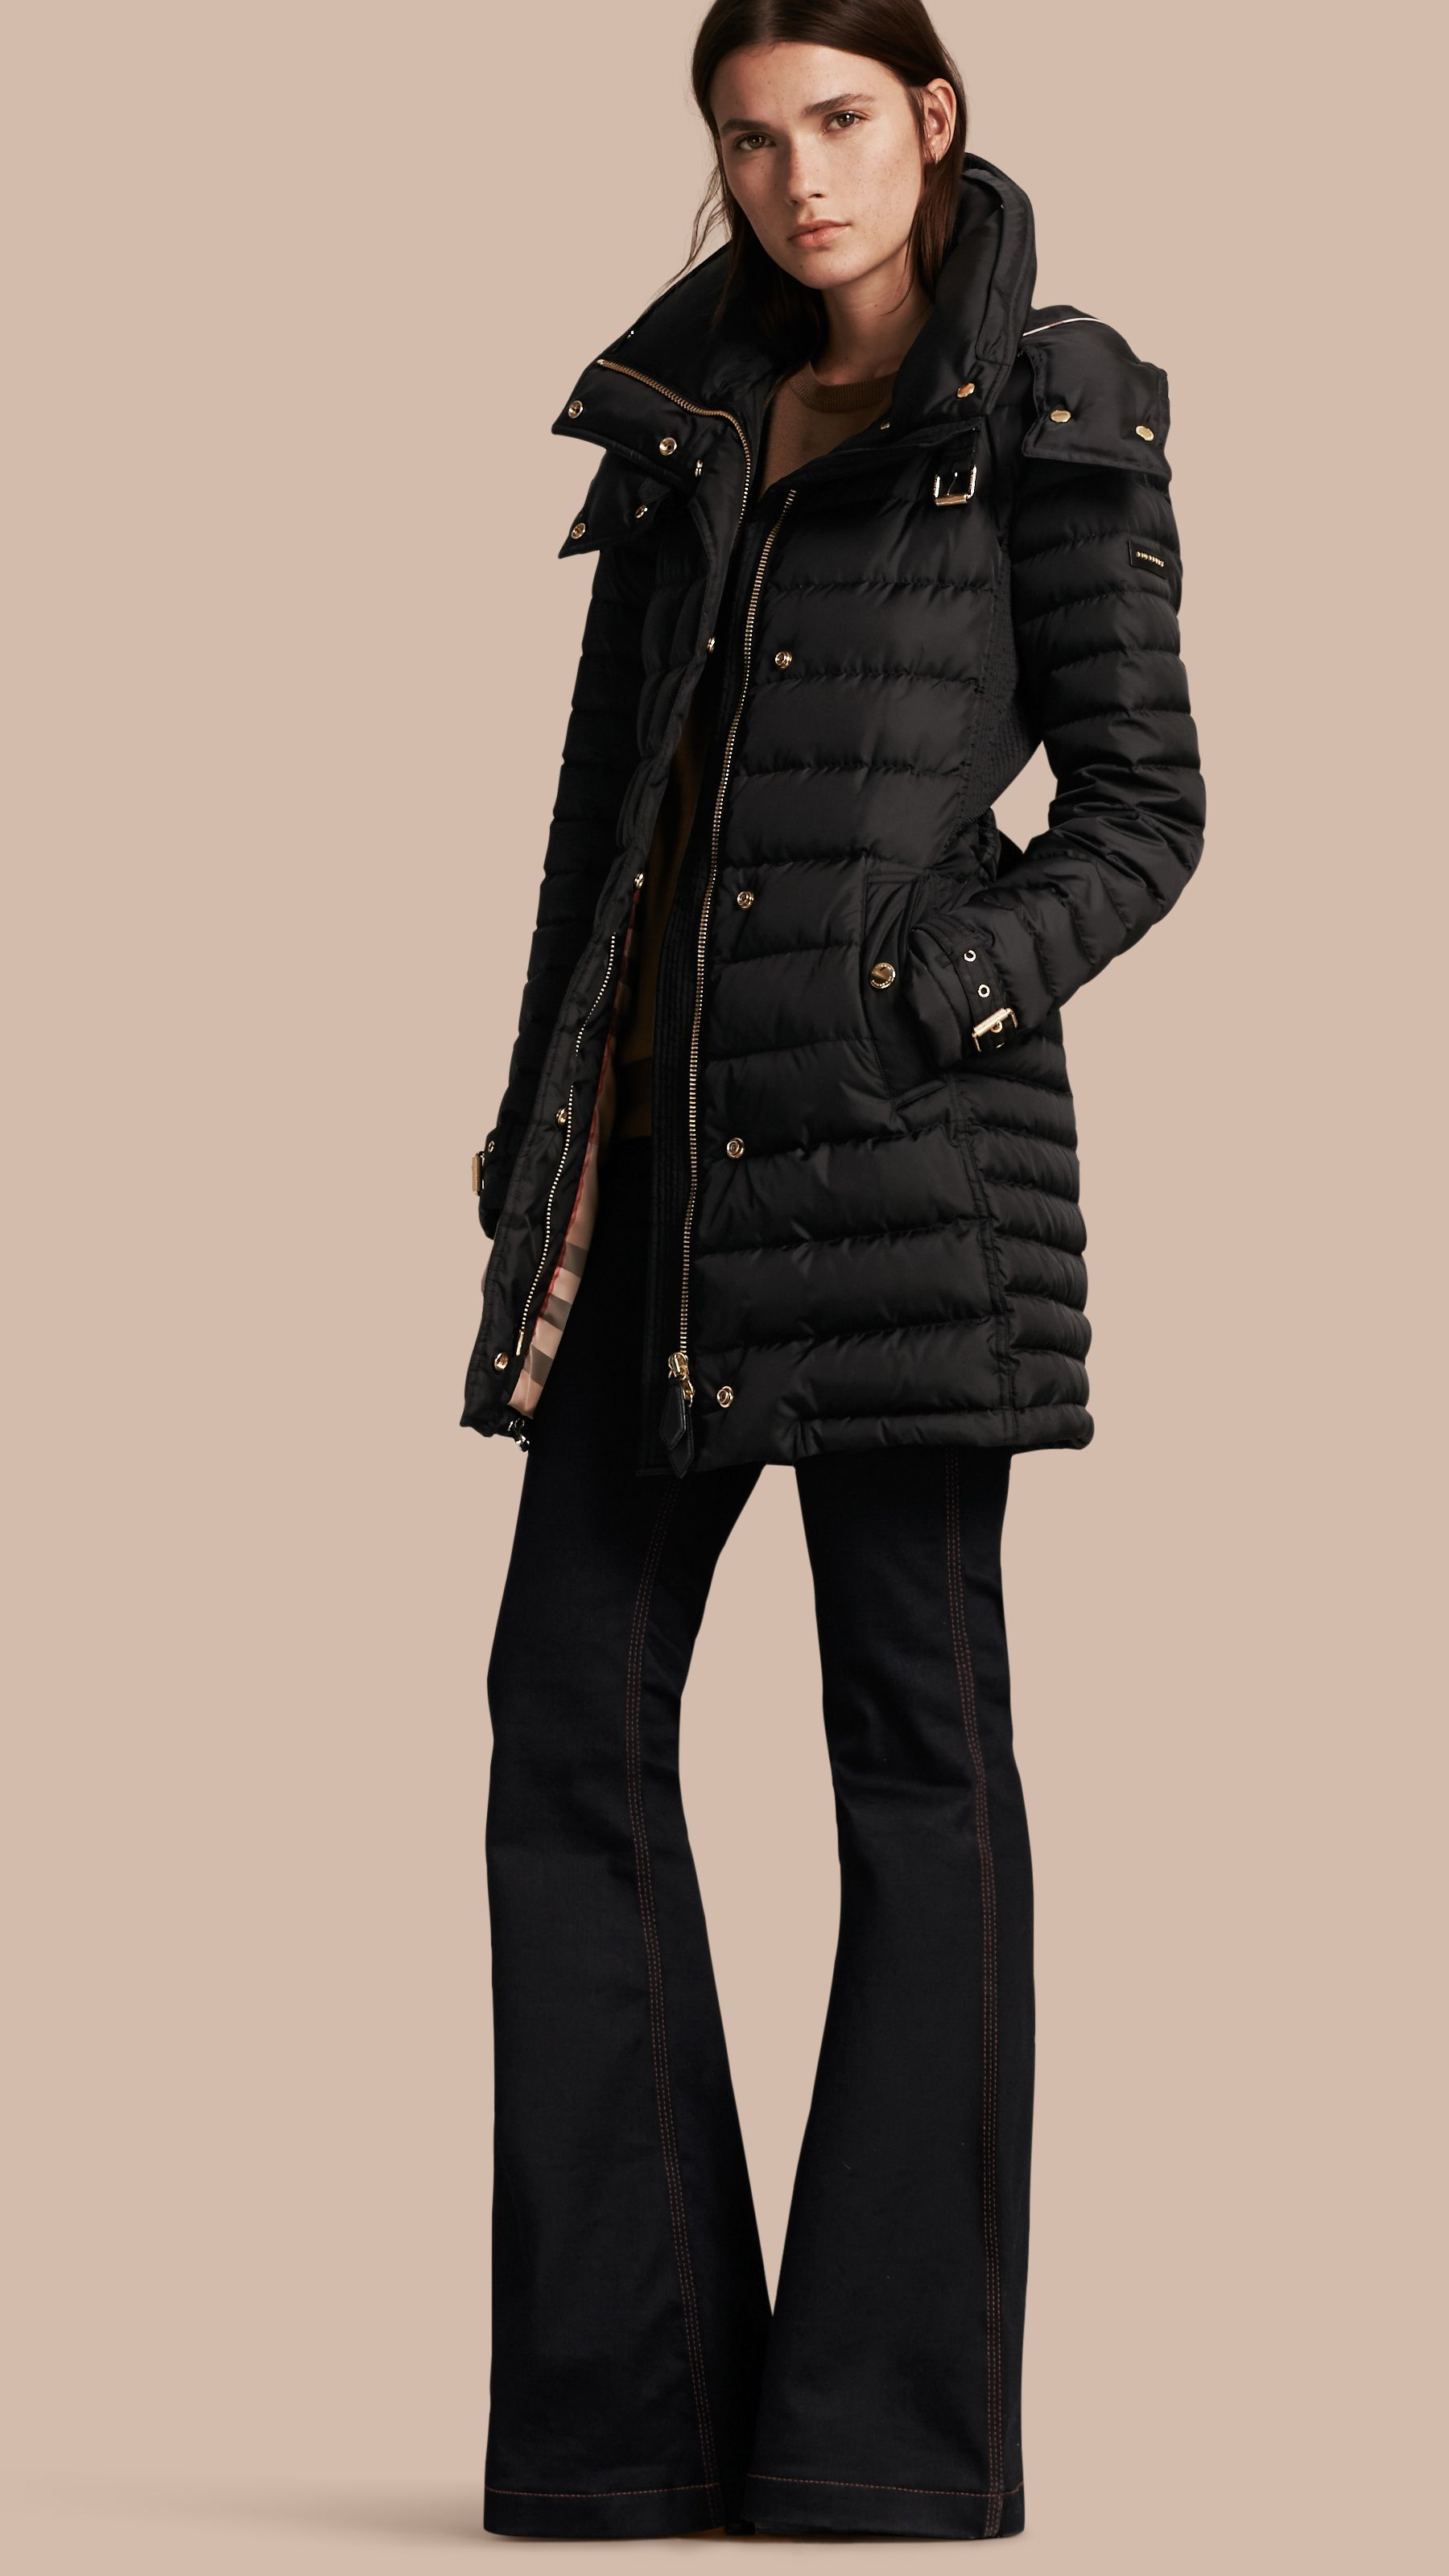 05e84b7a5 Down-filled Puffer Coat with Packaway Hood in Black - Women ...